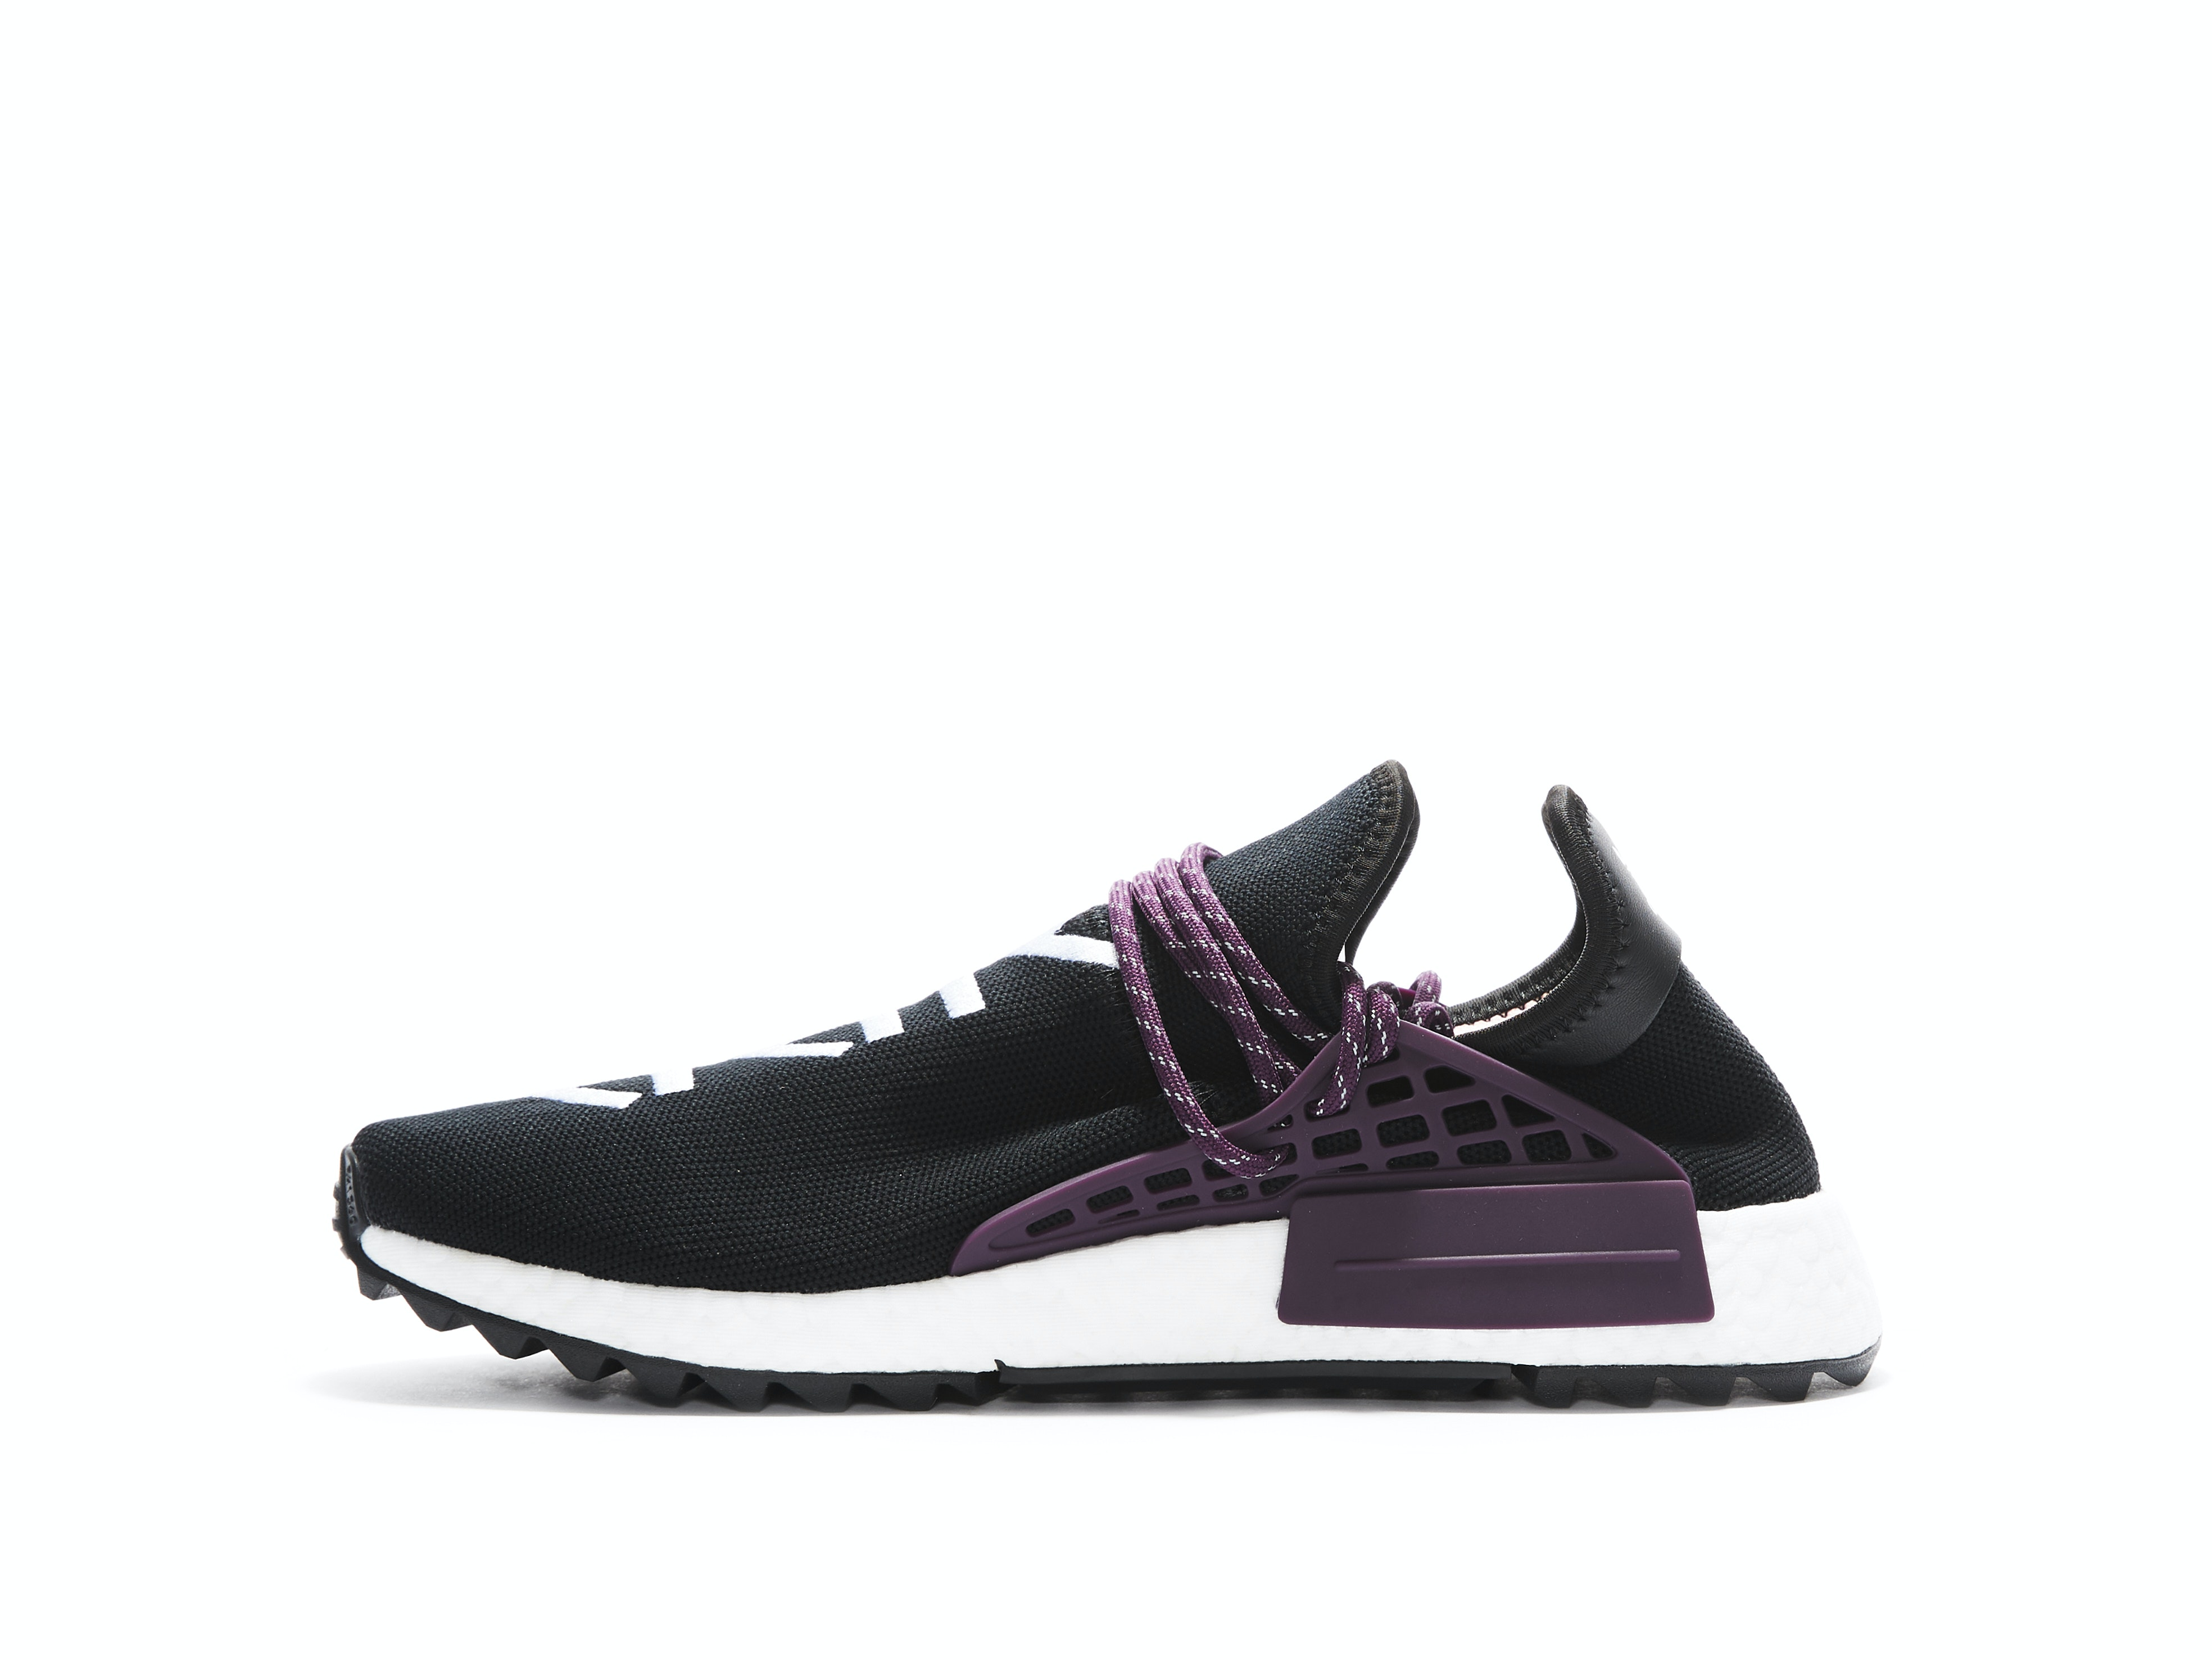 bc16900e9 Pharrell x NMD TR Equality. 100% AuthenticAvg Delivery Time  1-2 days.  Adidas   AC7033